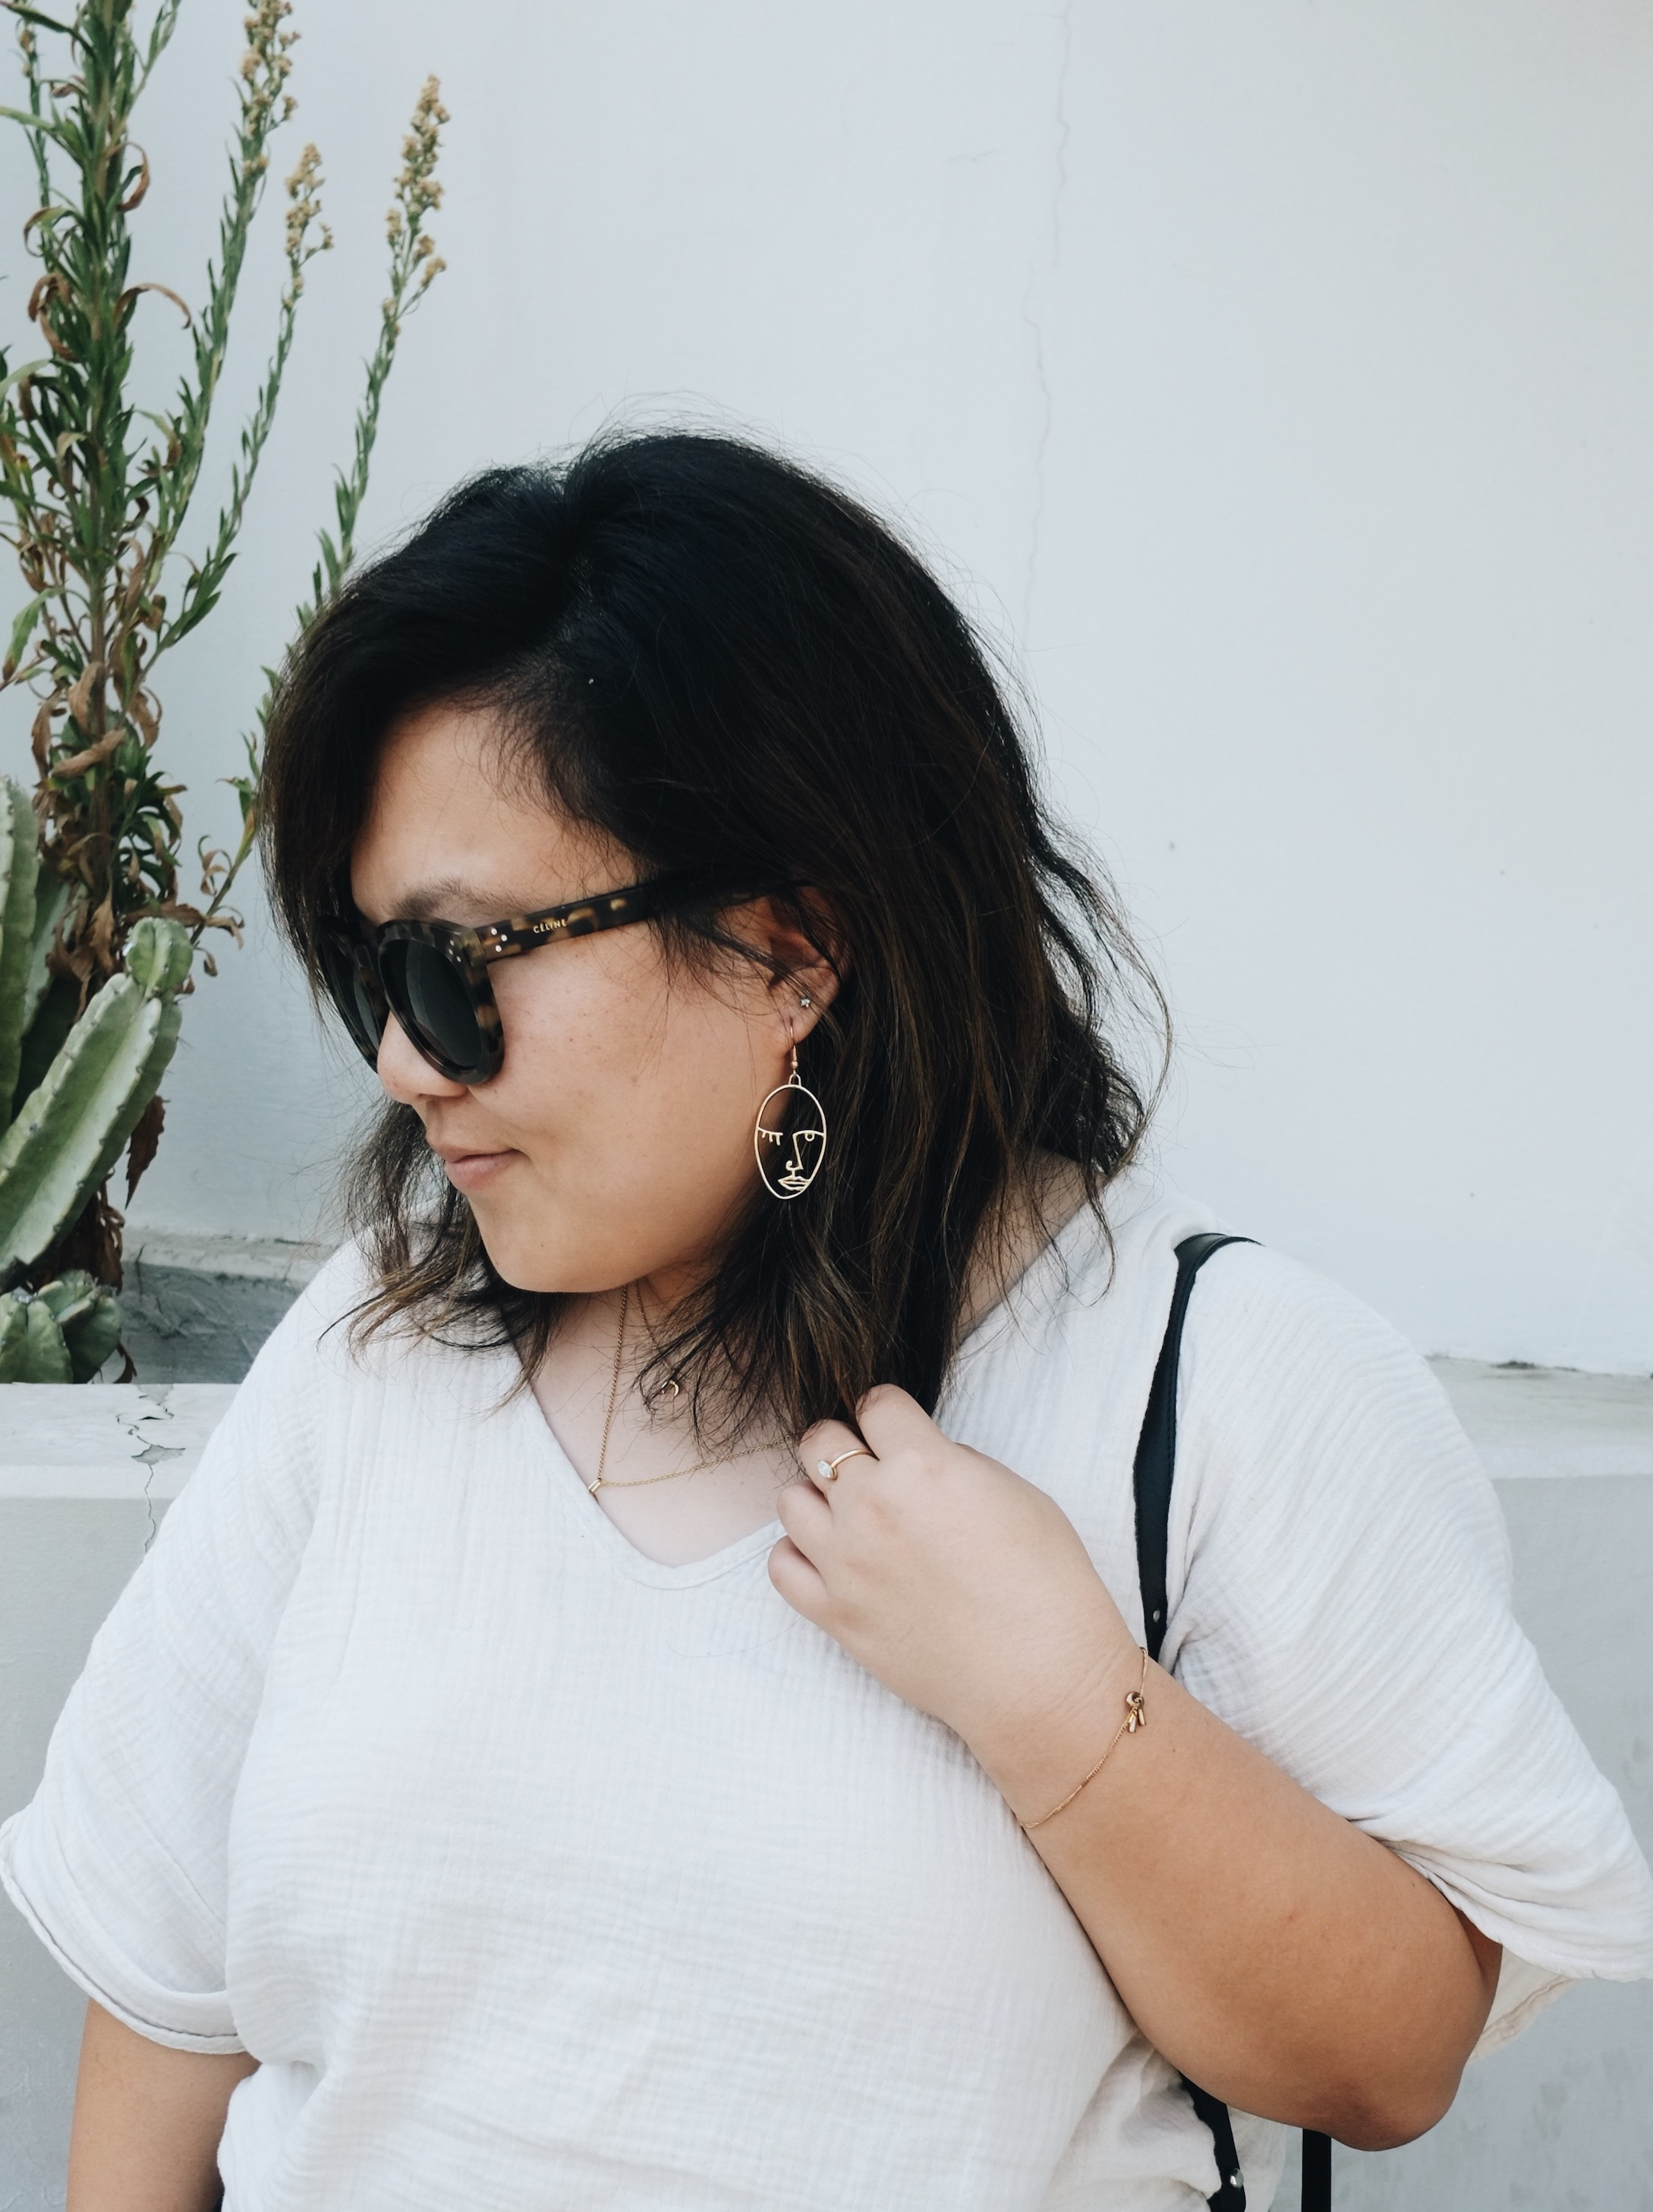 Cute minimalist line drawing earrings // A Week Of Minimalist Uniform Outfits With Jasmine Hwang From The Pleb Life on The Good Trade